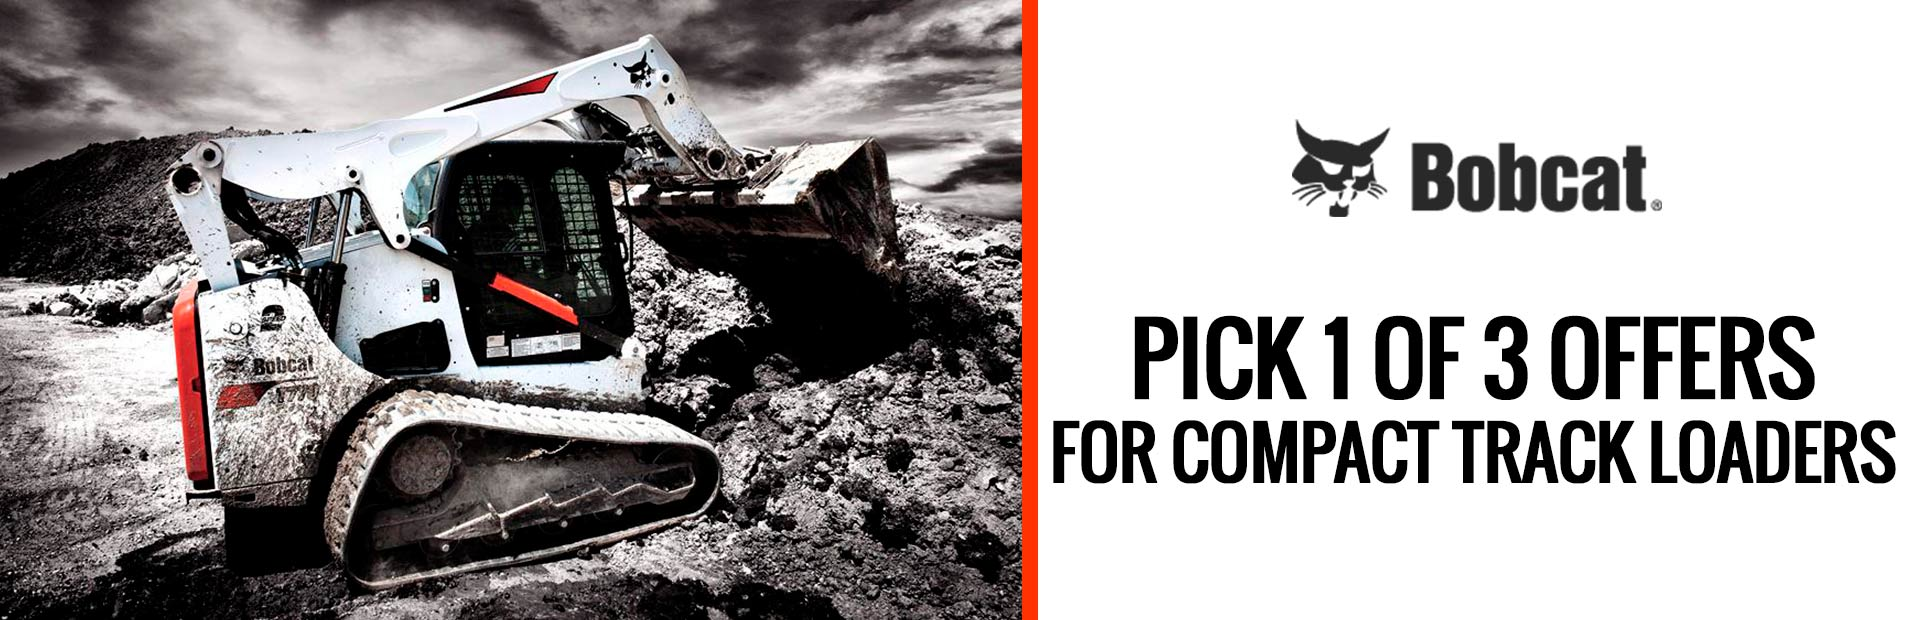 Bobcat: Pick 1 of 3 Offers for Bobcat Compact Track Loader